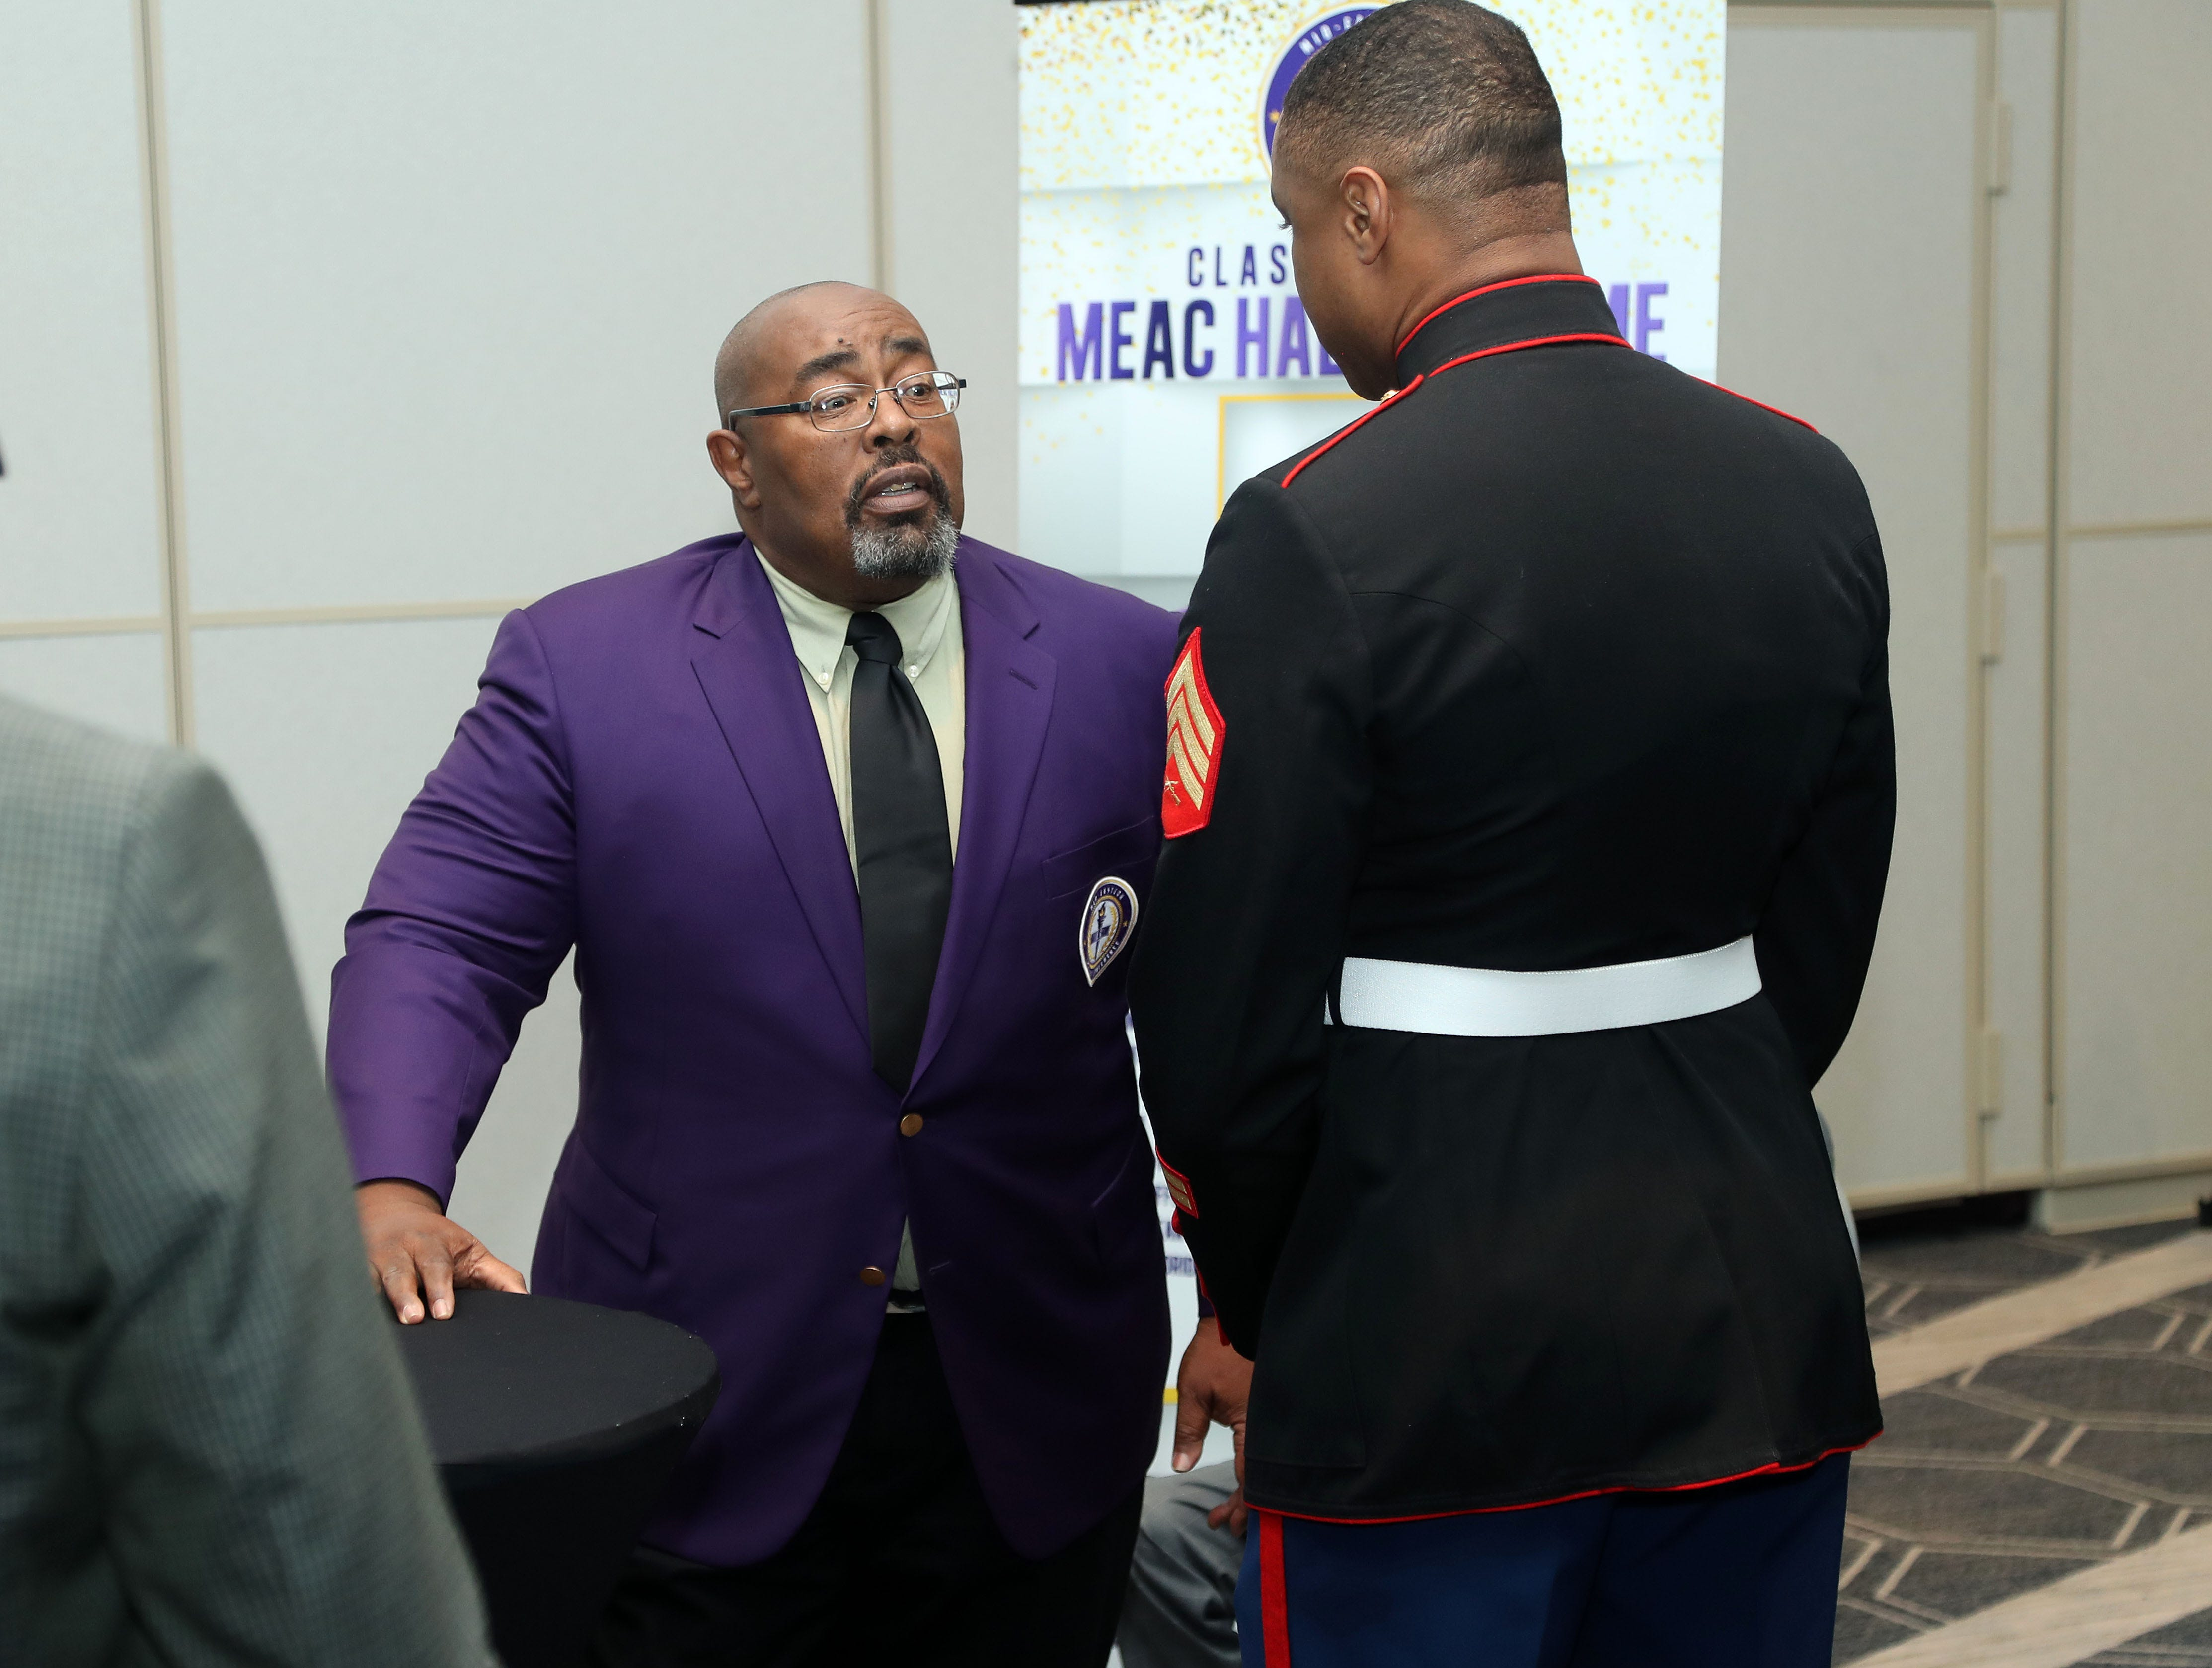 FAMU's Alvin Hollins socializes with a member of the U.S. Marines during the MEAC Hall of Fame enshrinement on Thursday, March 14, 2019 in Norfolk, Virginia.